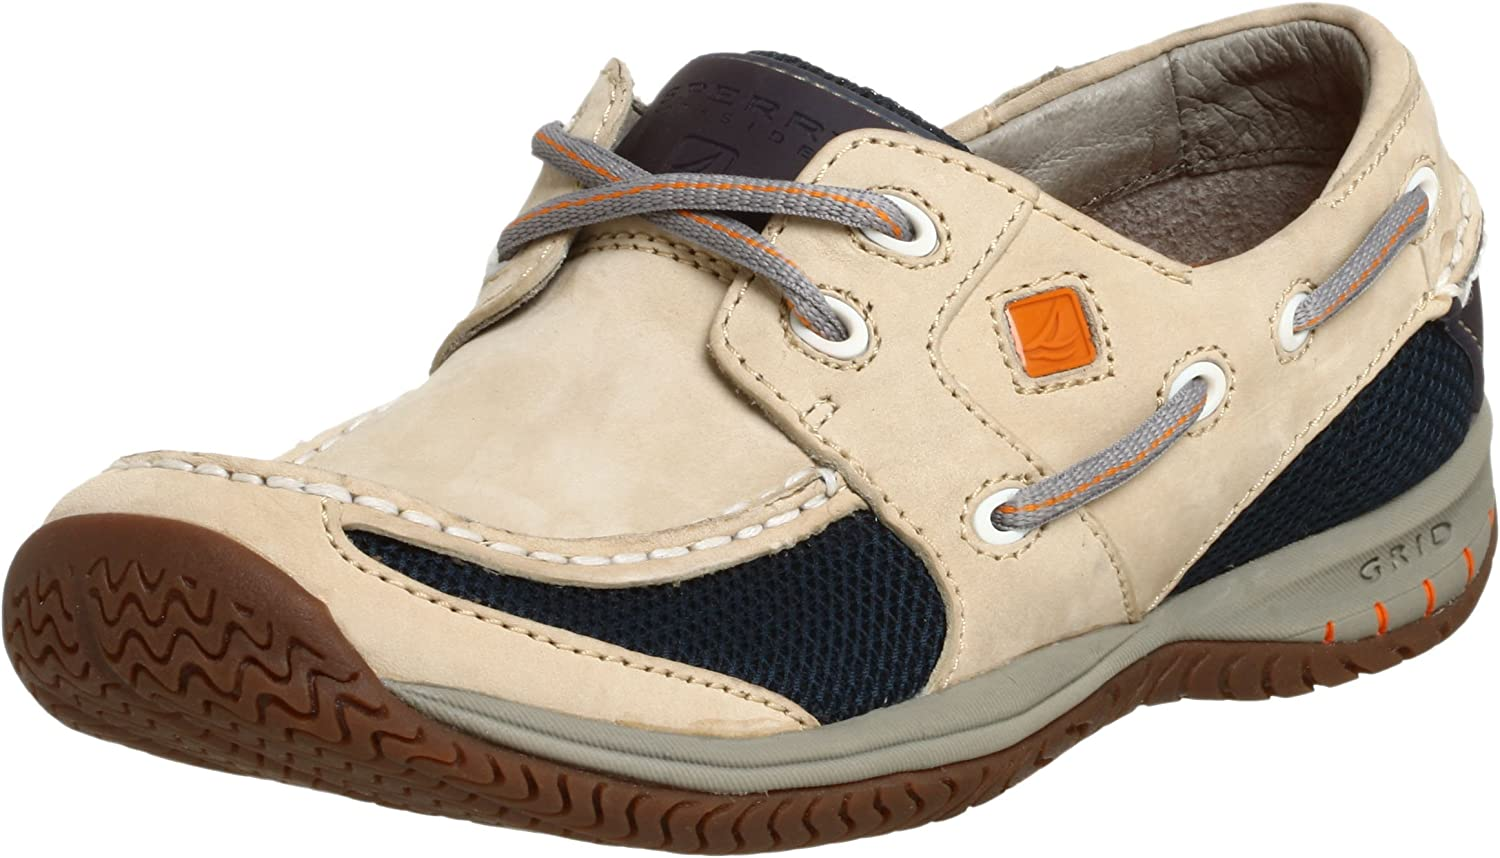 NEW MEN/'S  SPERRY AUTHENTIC ORIGINALS A//O 2-EYE NATUICAL NAVY BOAT SHOES